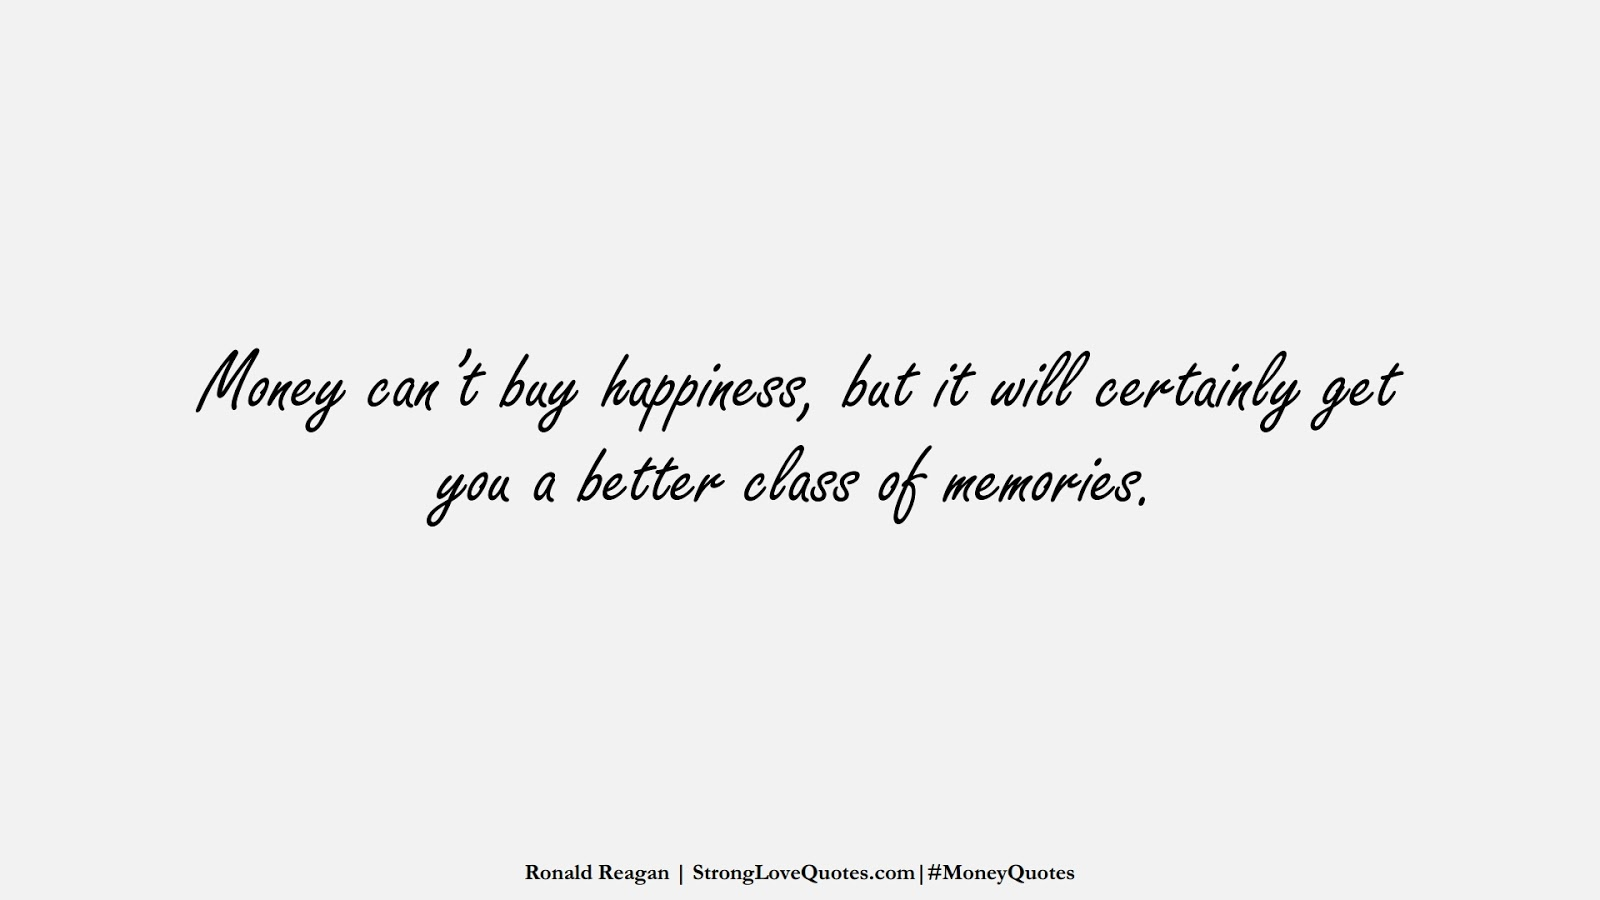 Money can't buy happiness, but it will certainly get you a better class of memories. (Ronald Reagan);  #MoneyQuotes